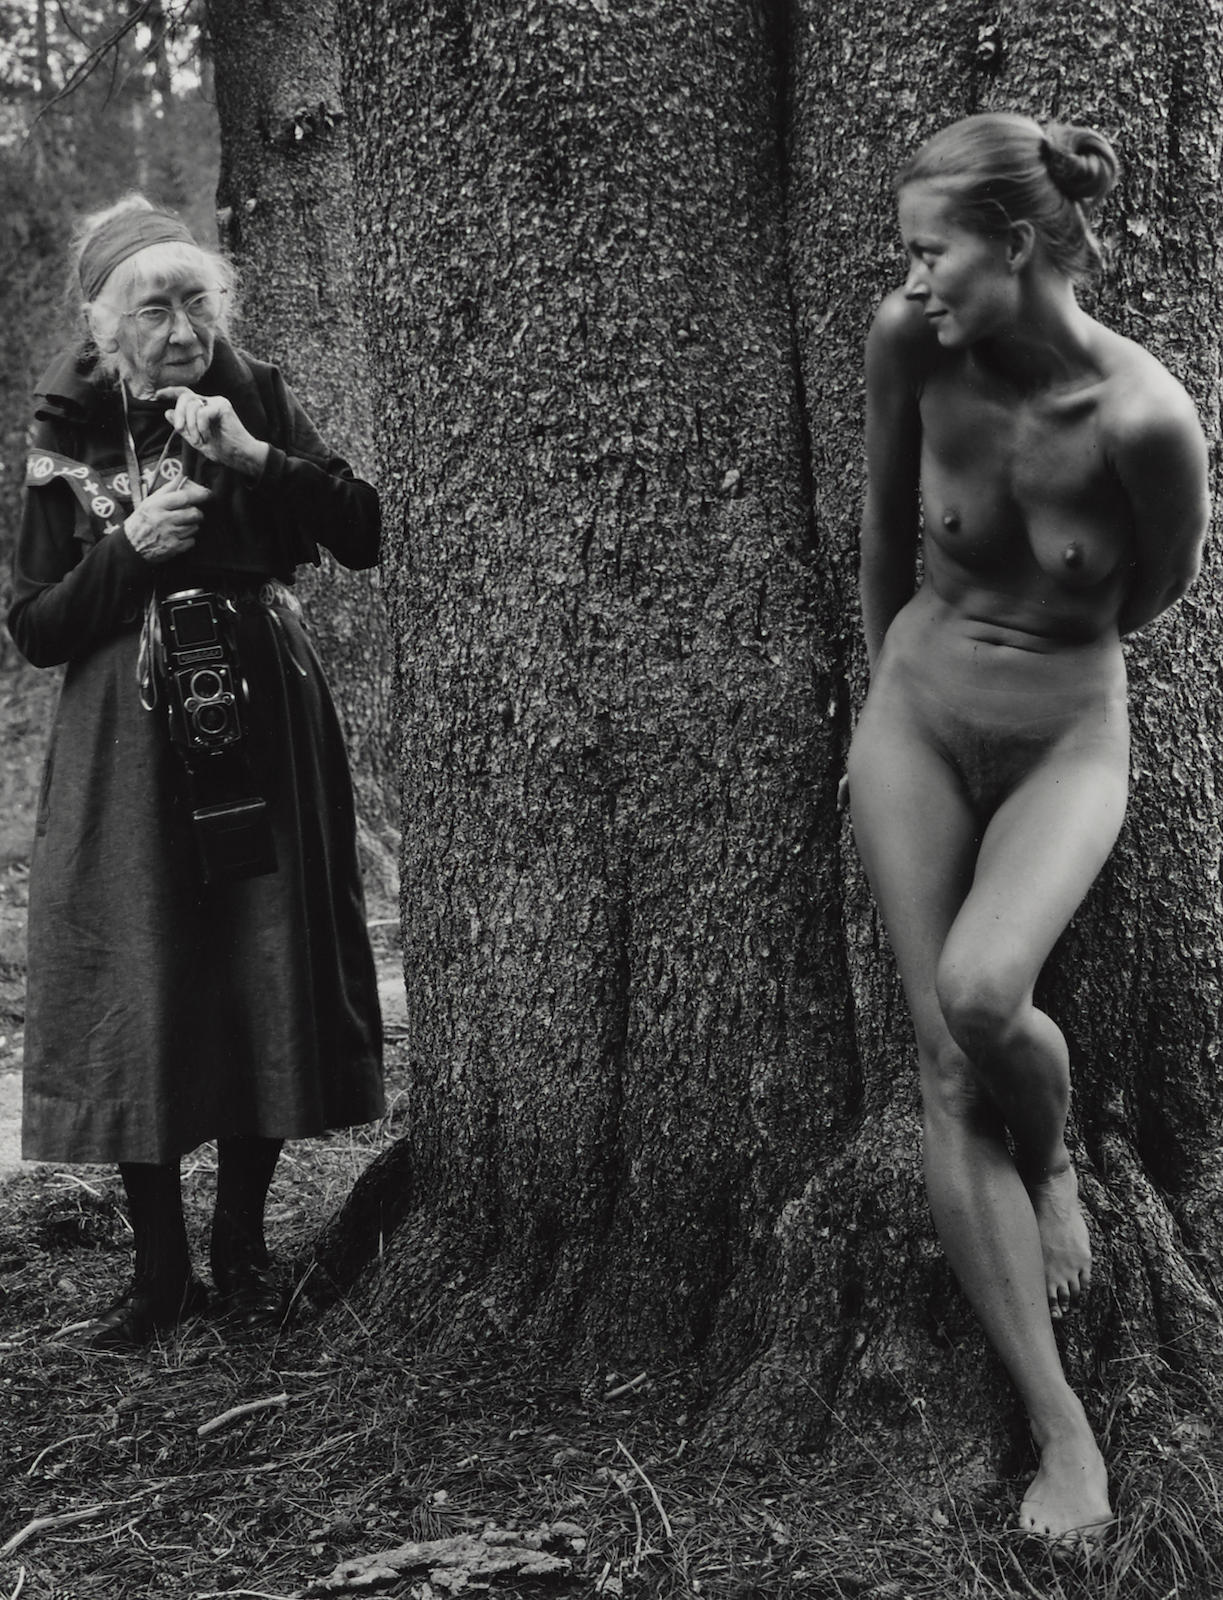 Judy Dater-Imogen Cunningham And Twinka At Yosemite-1974